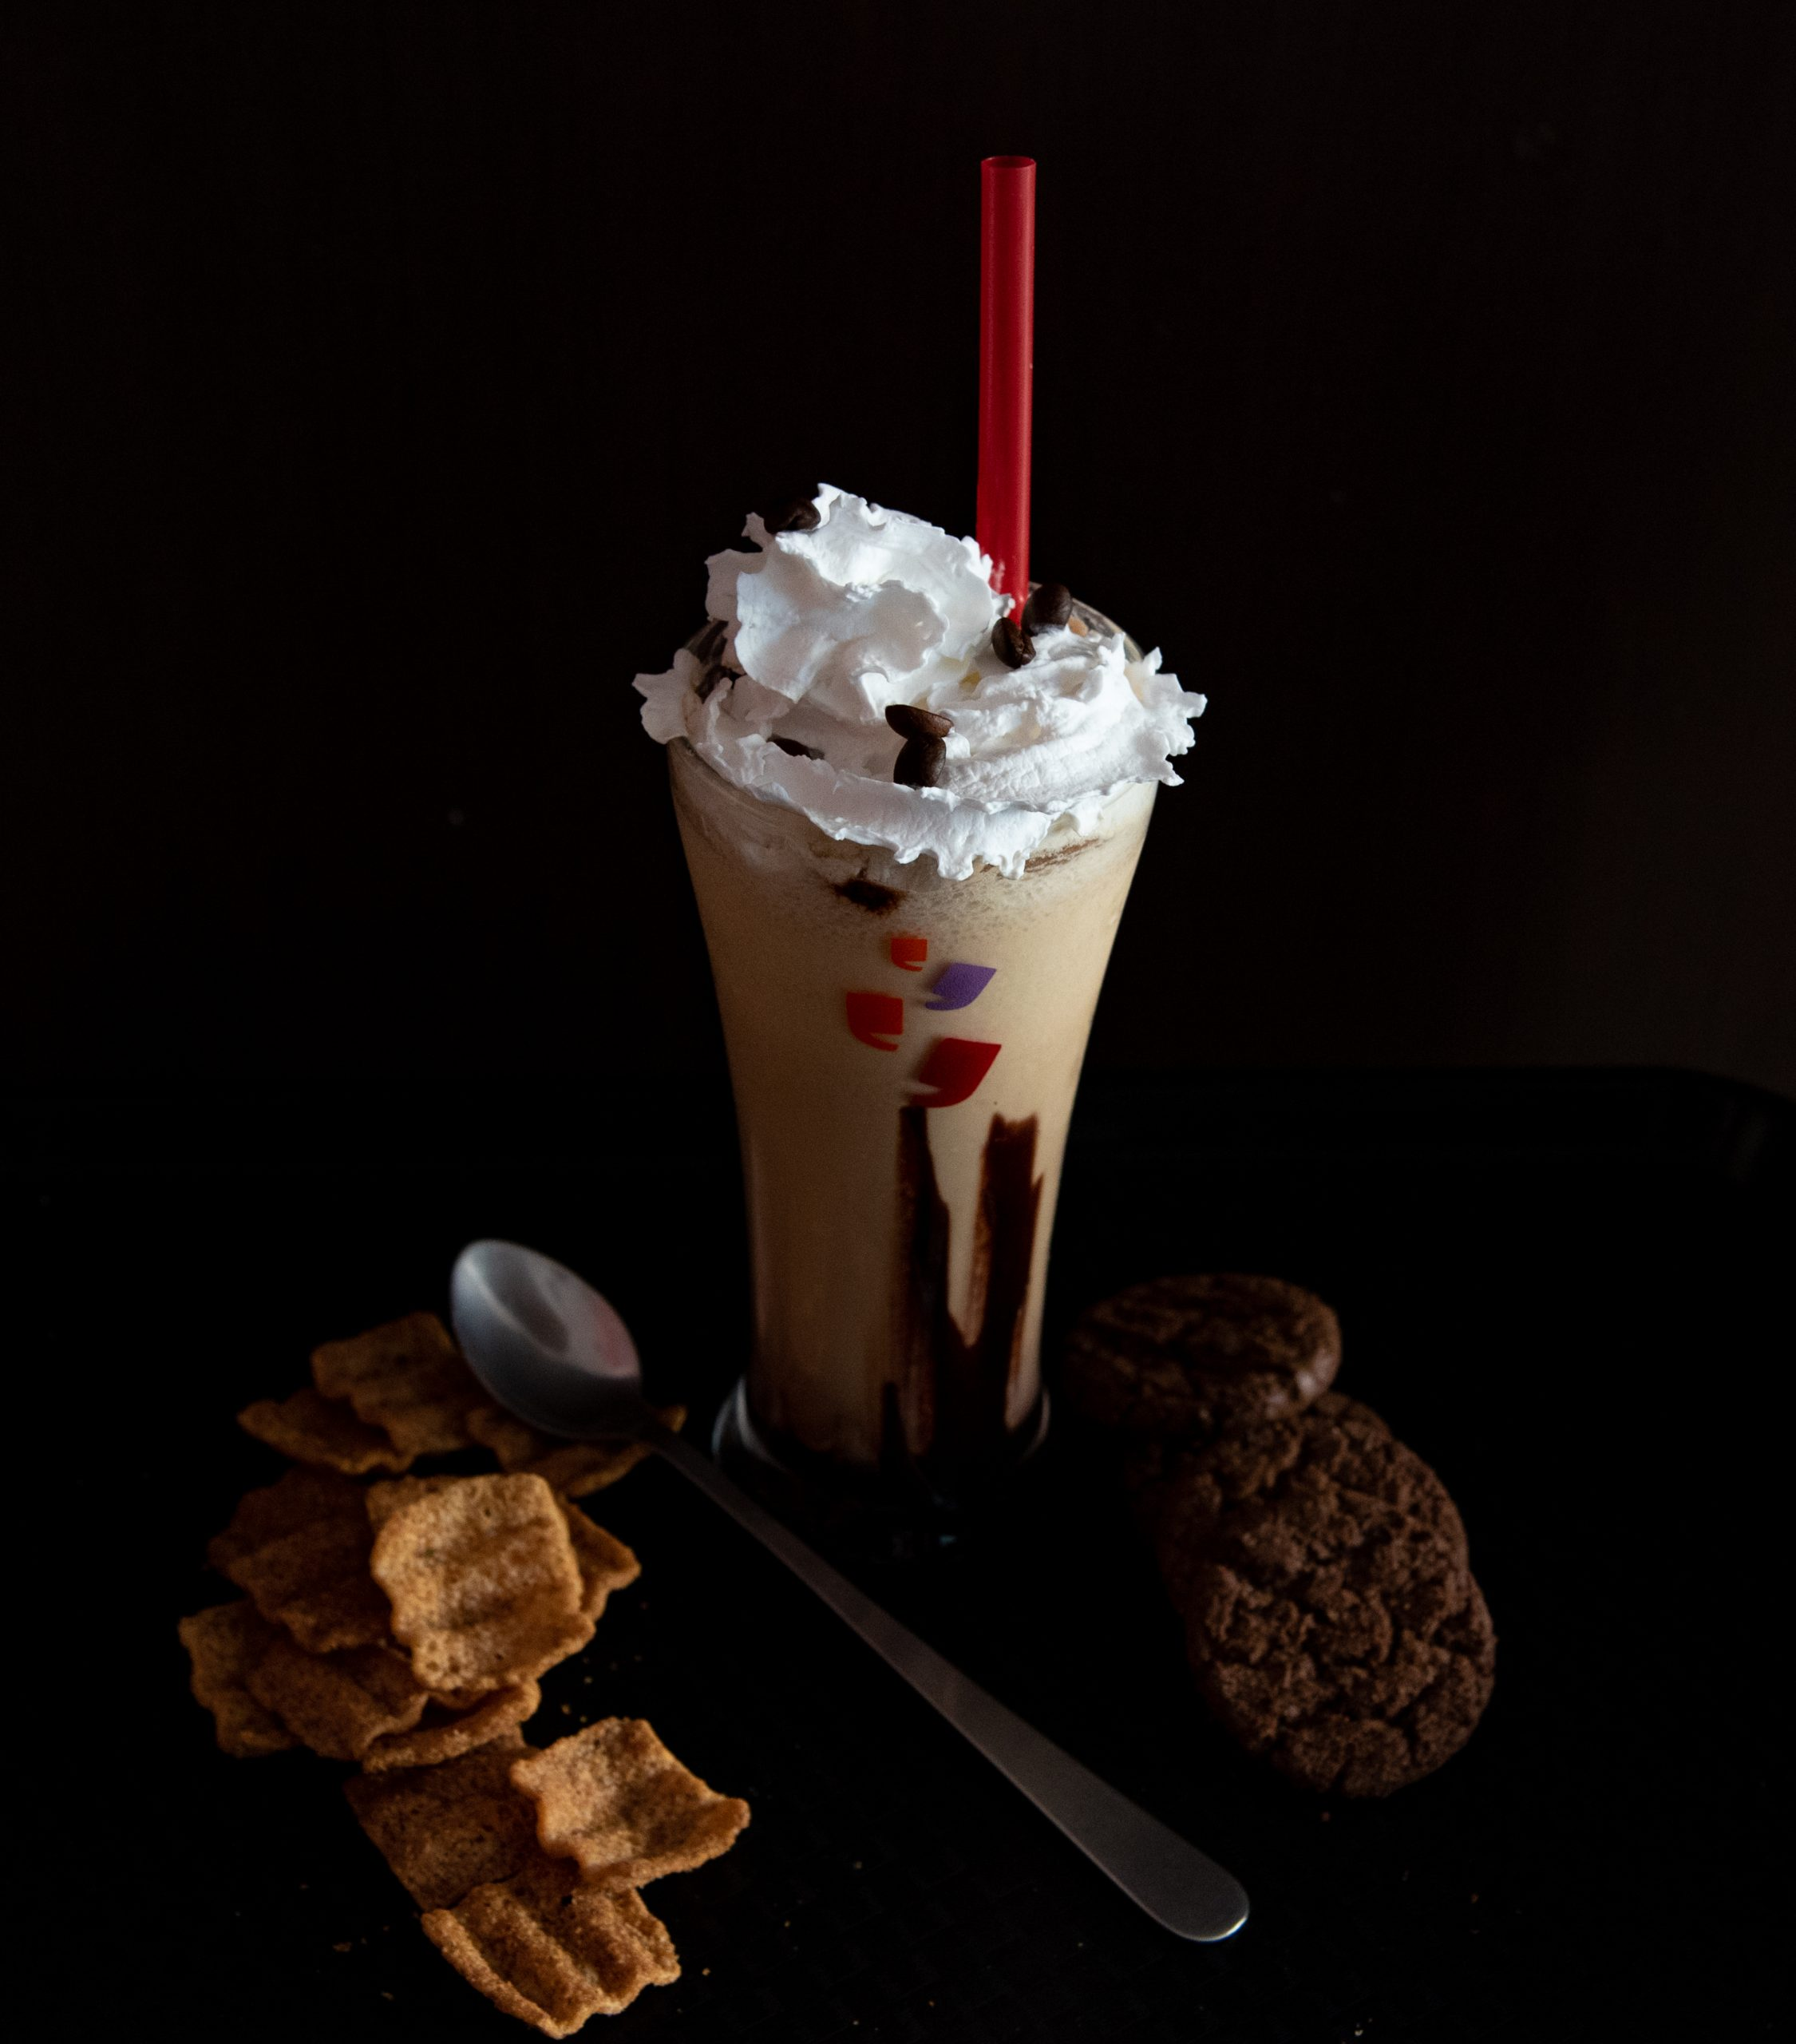 cold coffee and cookies